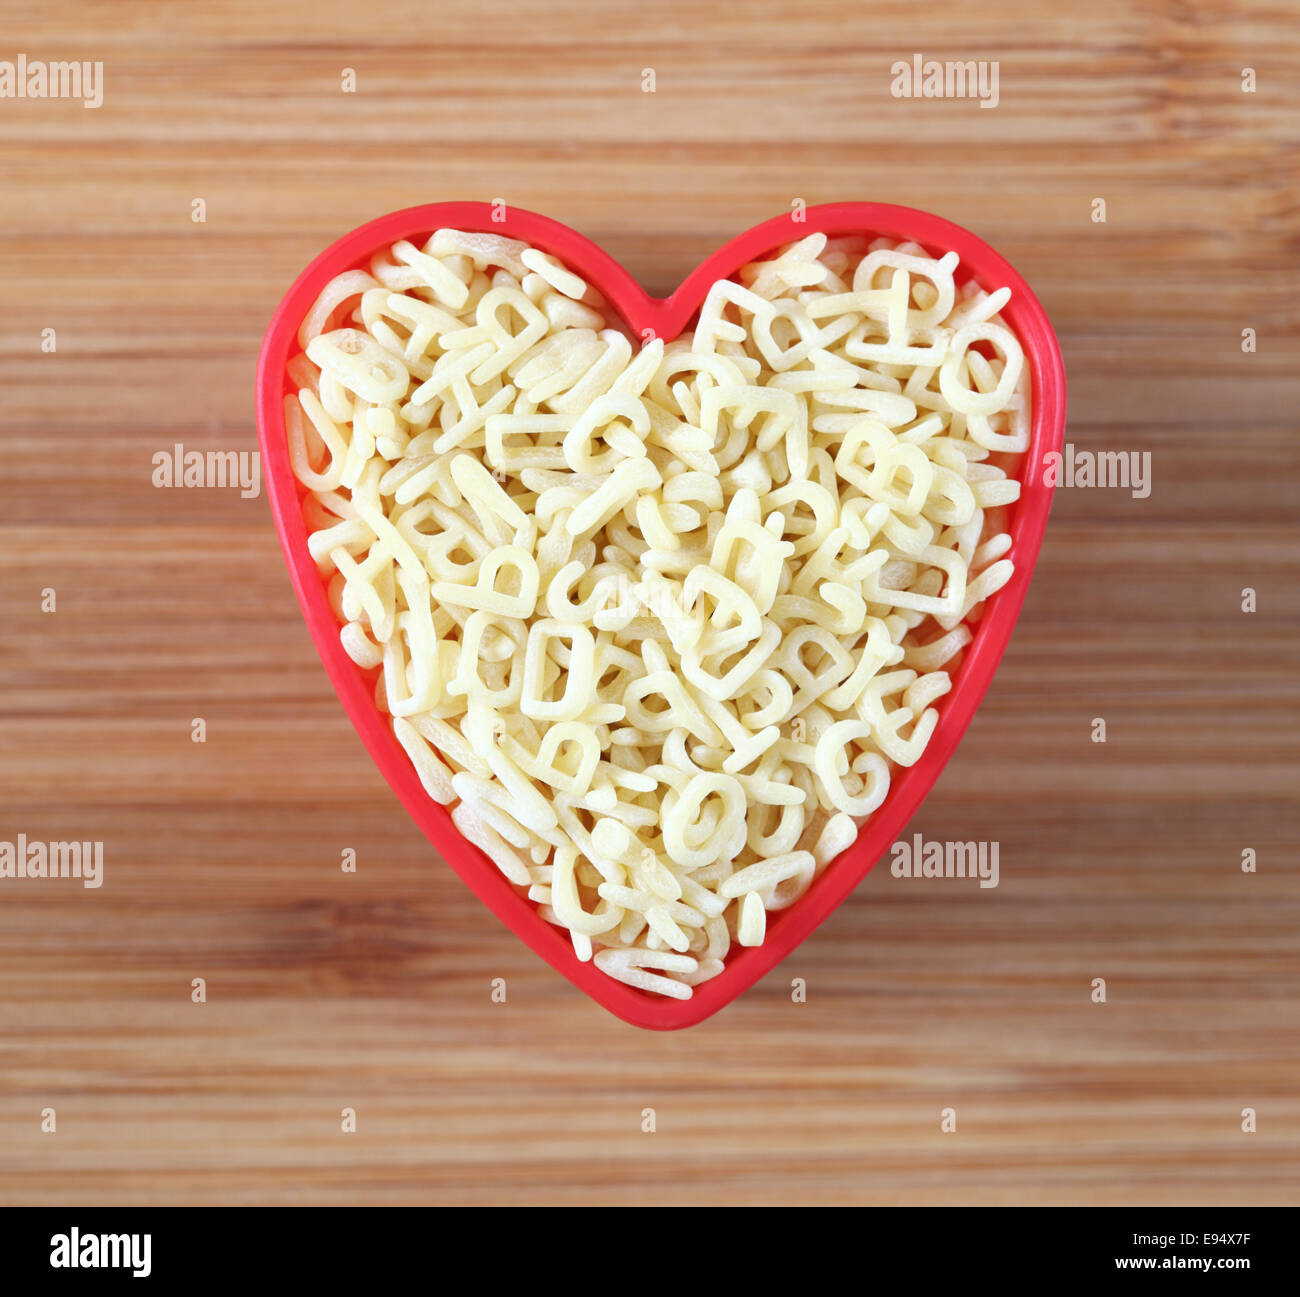 Raw alphabet soup pasta in a heart bowl. Close-up. - Stock Image